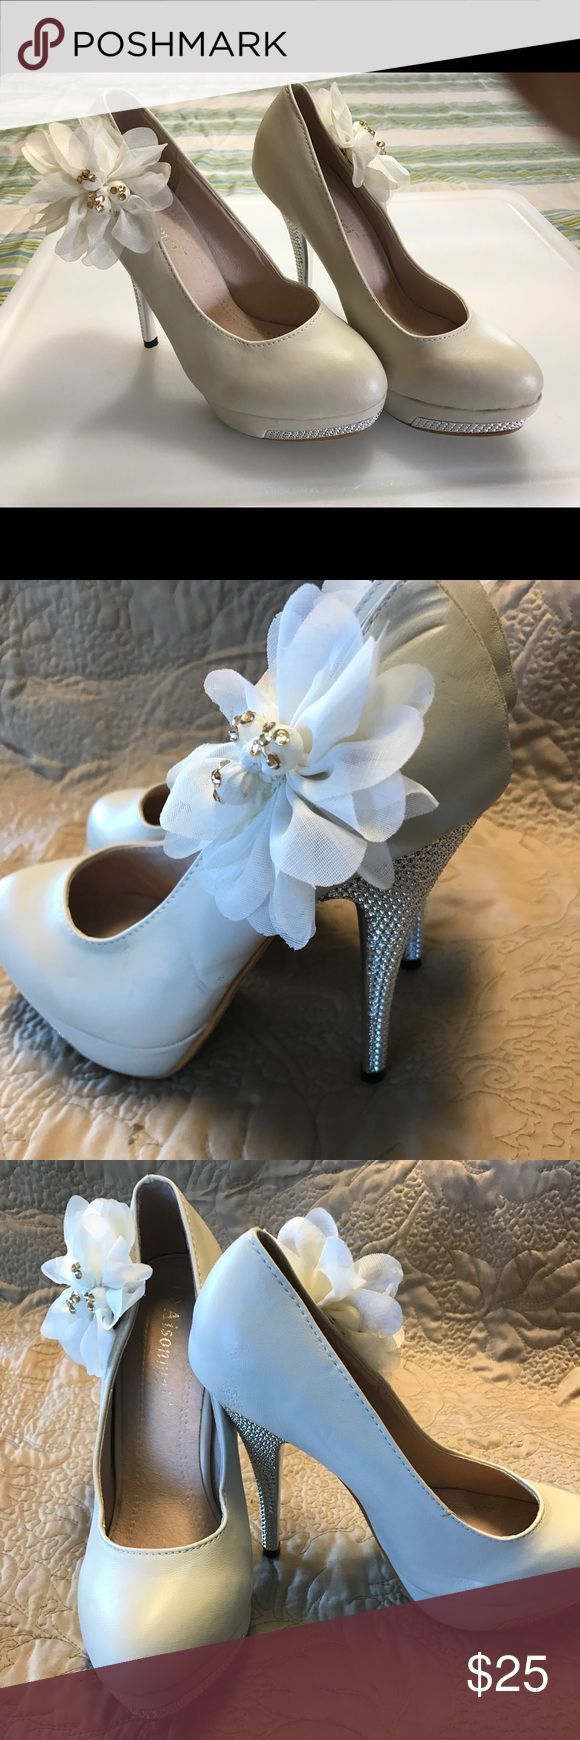 Crystal fancy high heels Cream high heels with crystals on the heel and platform. Silk see thru flower with crystals on the side. Beautiful shoes brand new Shoes Heels